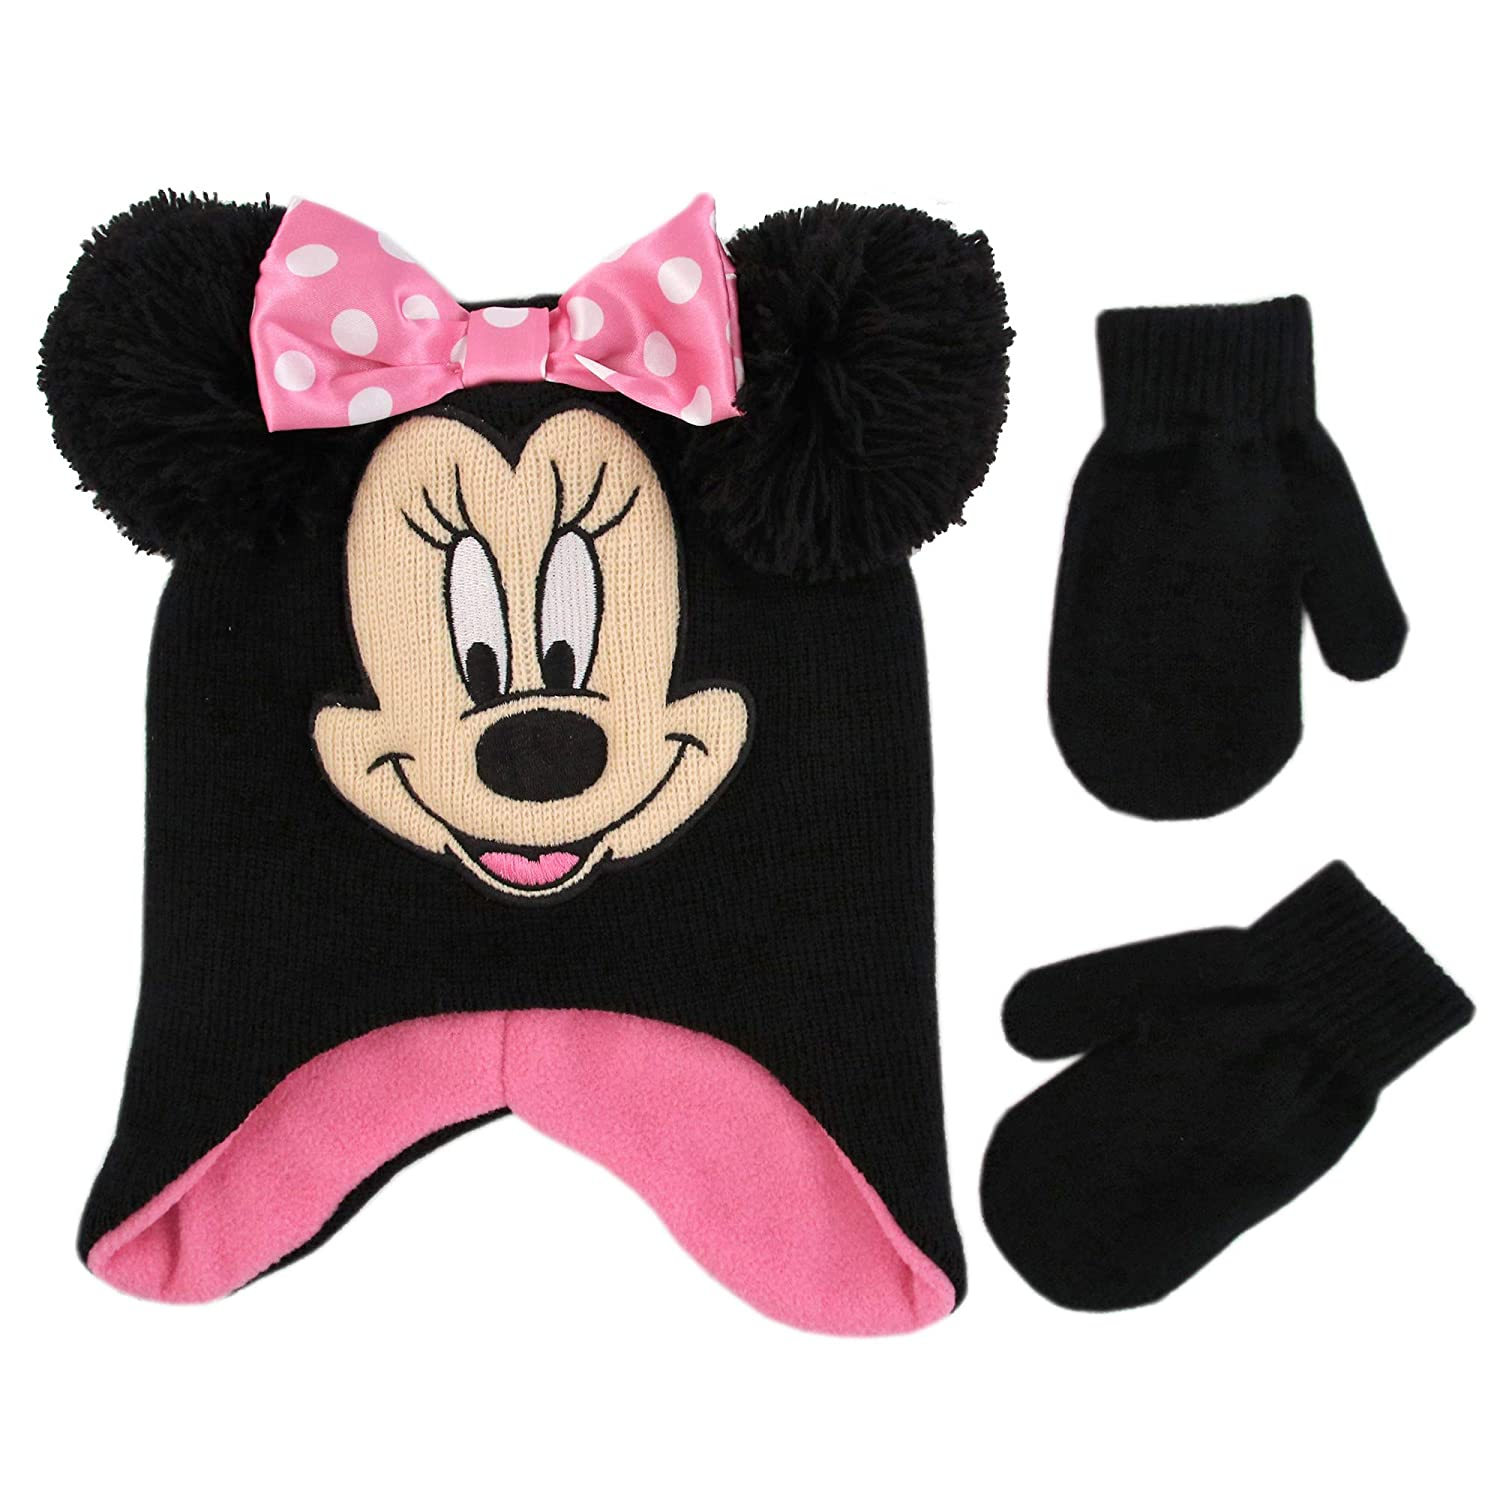 Disney Girls' Toddler Minnie Mouse Character Hat and Mittens Cold Weather Set, Black/Pink, Age 2-4 MNF83374AZ